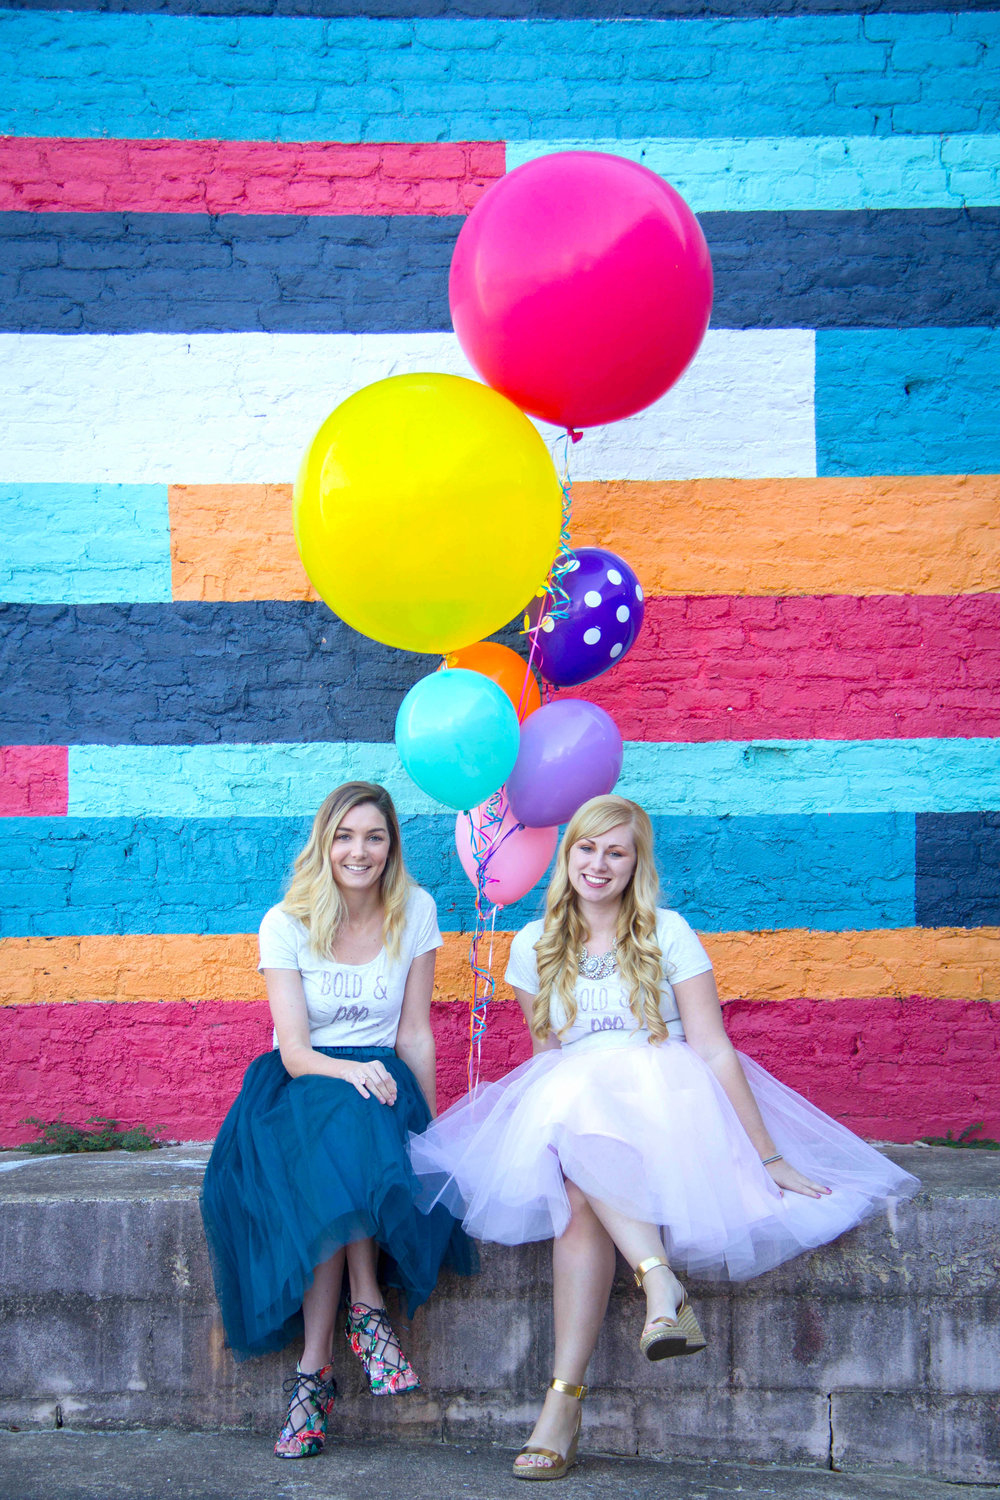 Bold & Pop : Co-Founders Anna Osgoodby and Mallory Musante